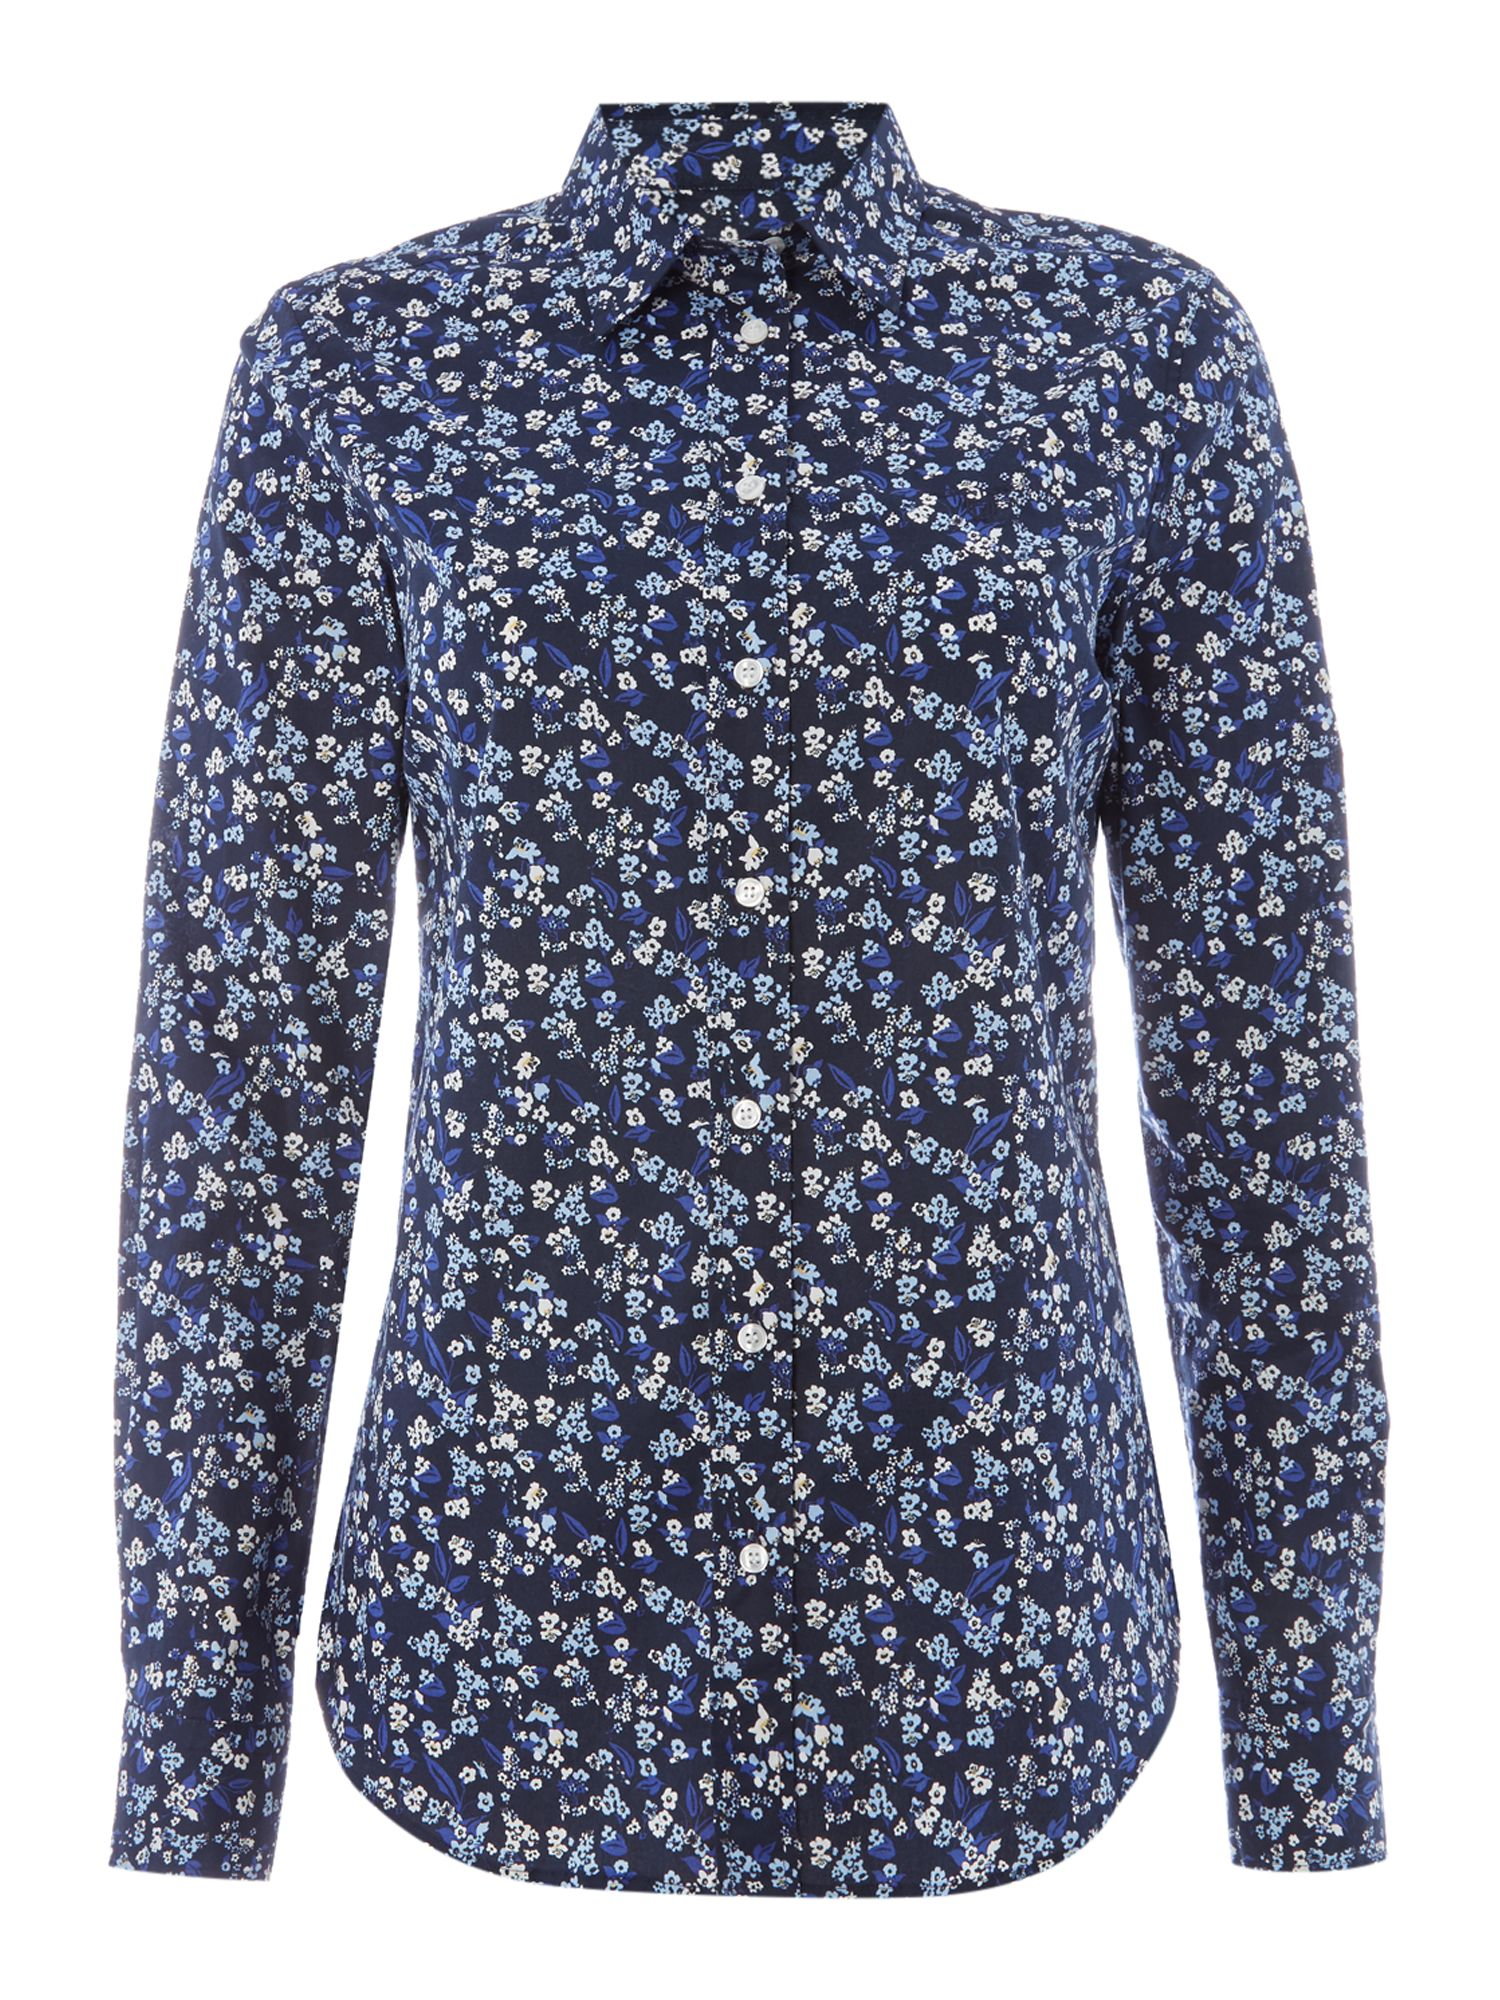 Gant Mini Floral Shirt In Stretch Broadcloth, Marine